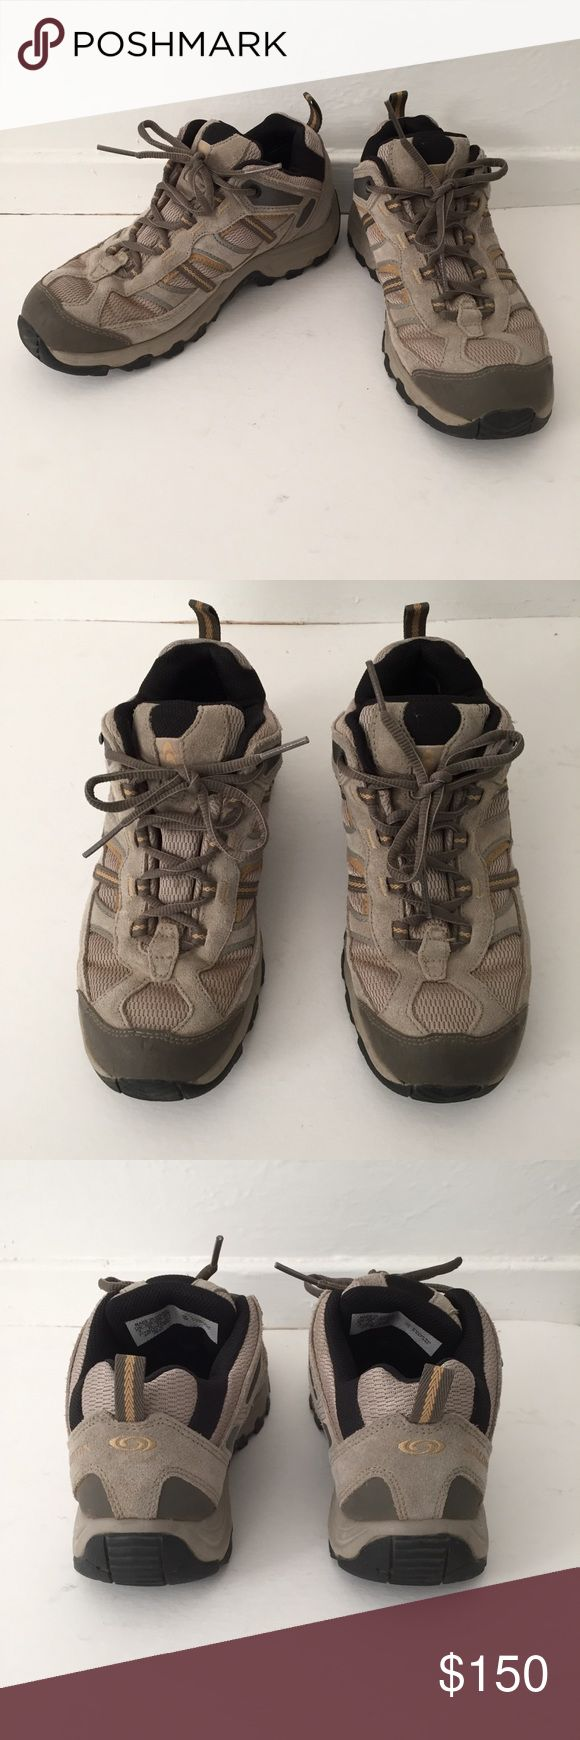 Salomon Hiking Boots Great heavy duty hiking boots. Goretex outer keeps your feet dry and contragrip soles keeps your footing.   worn a few times Salomon Shoes